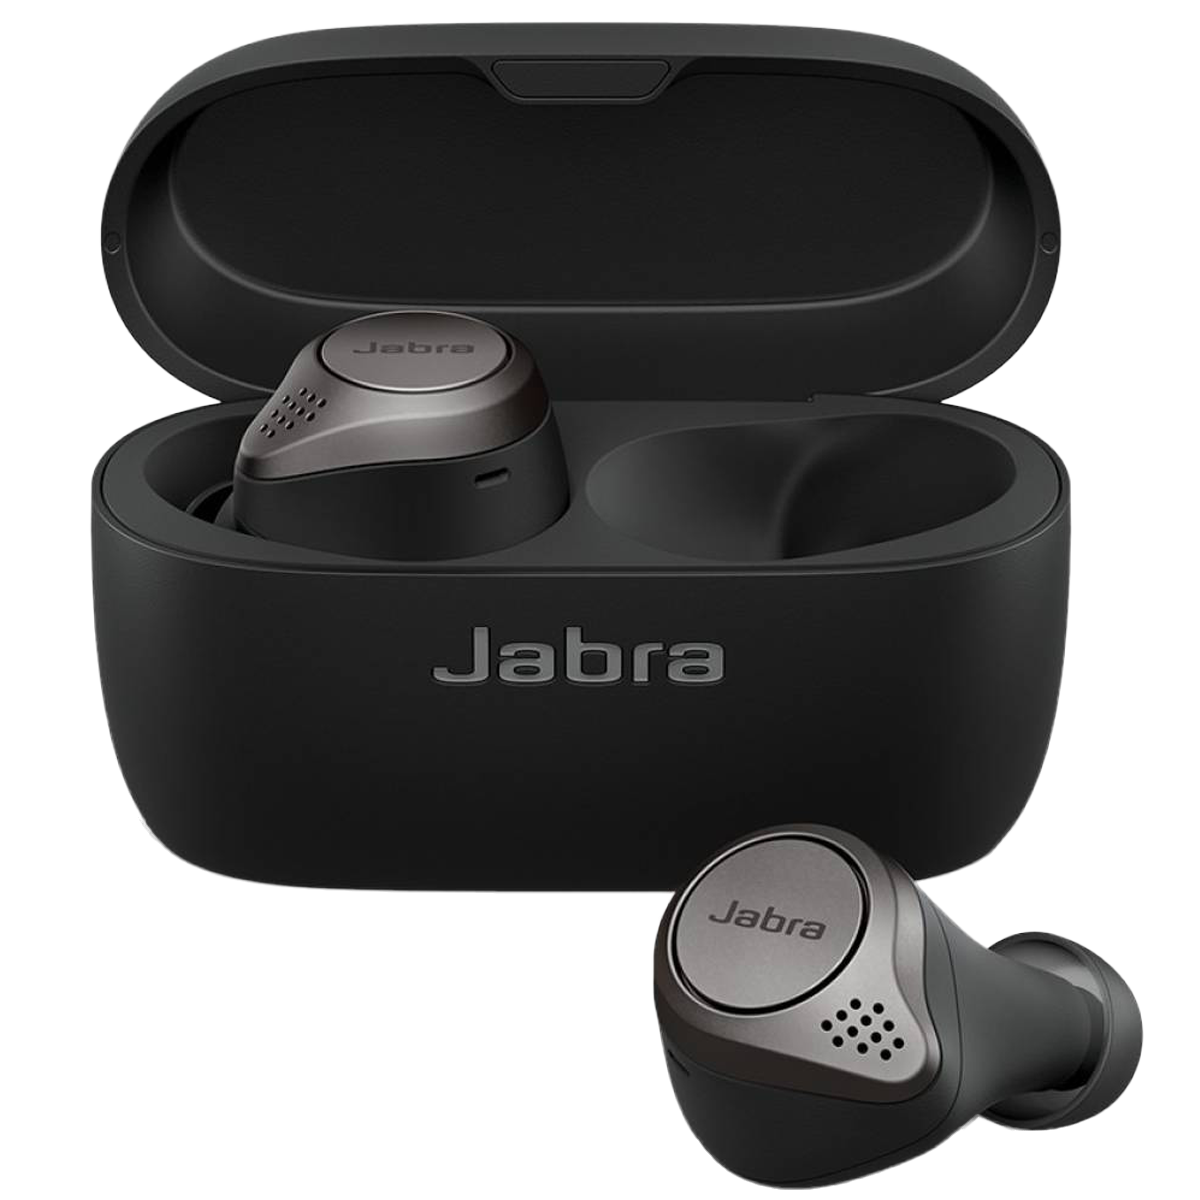 Jabra Elite 75t In-Ear Active Noise Cancellation Truly Wireless Earbuds with Mic (Bluetooth 5.0, Voice Assistant Supported, 100-99090000-40, Titanium Black)_1